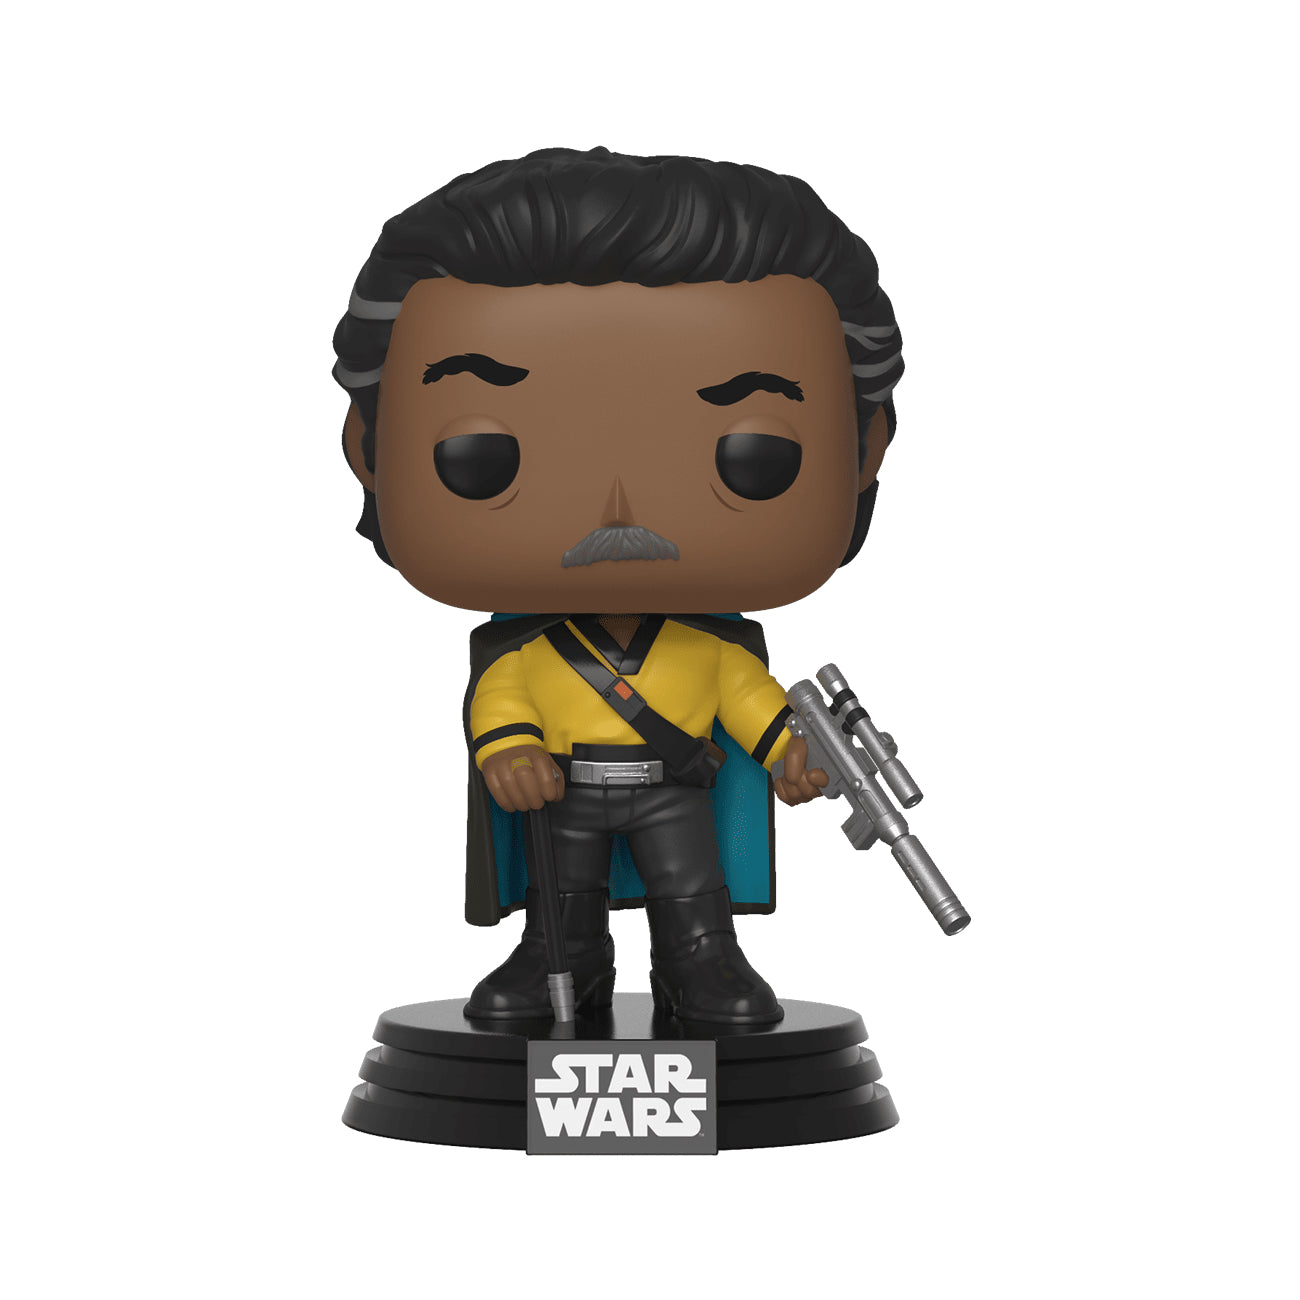 Star Wars The Rise of Skywalker Lando Calrissian